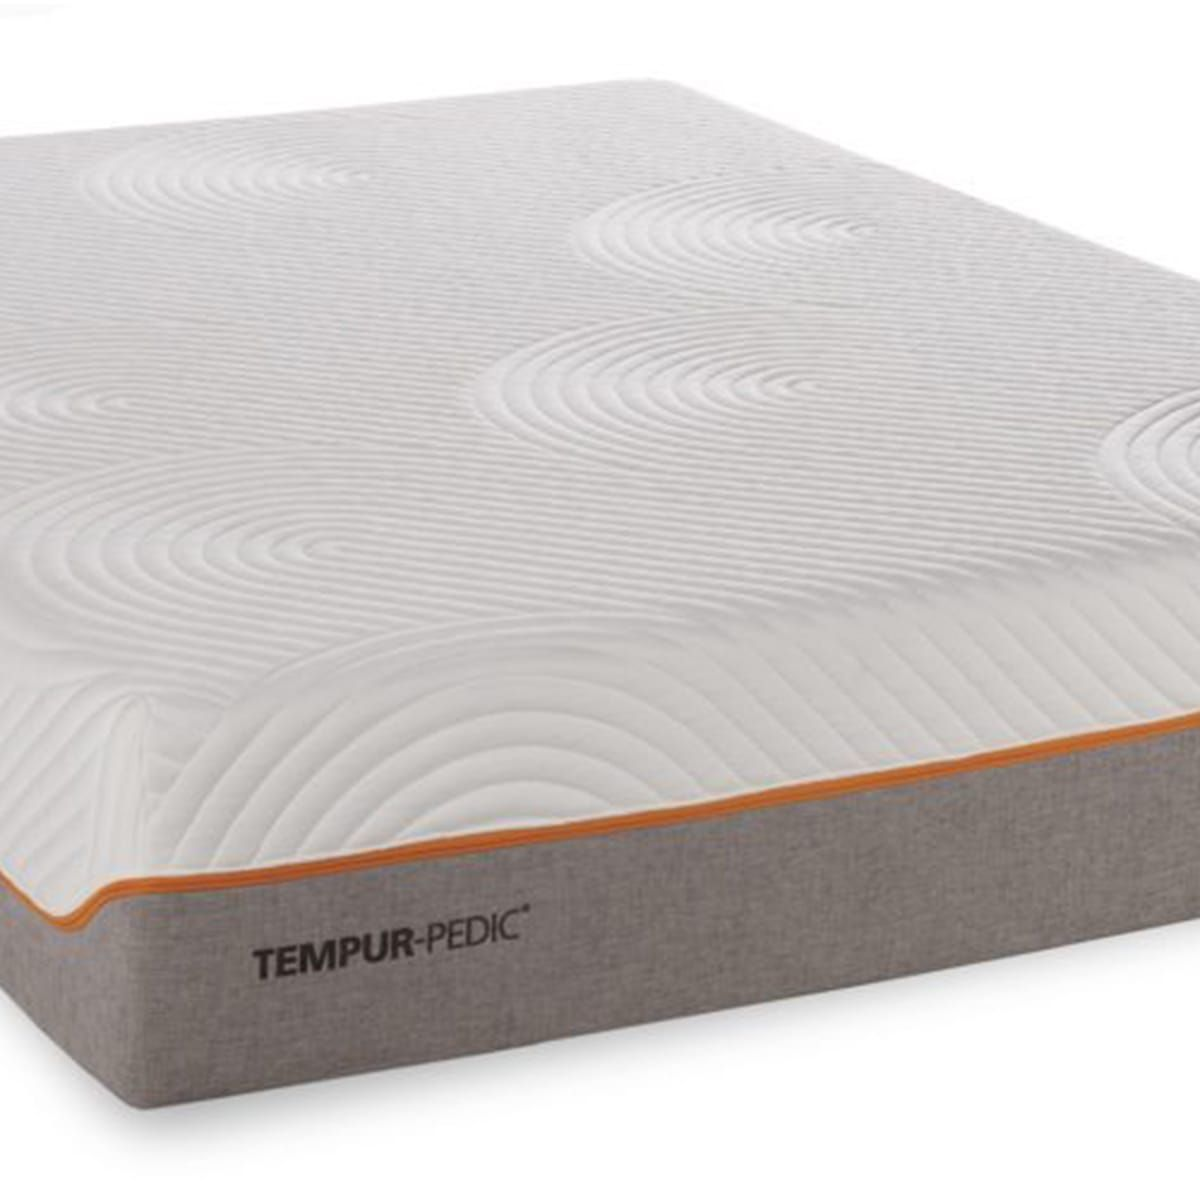 Tempur Pedic Tempur Contour Rhapsody Luxe Mattress Queen Bed